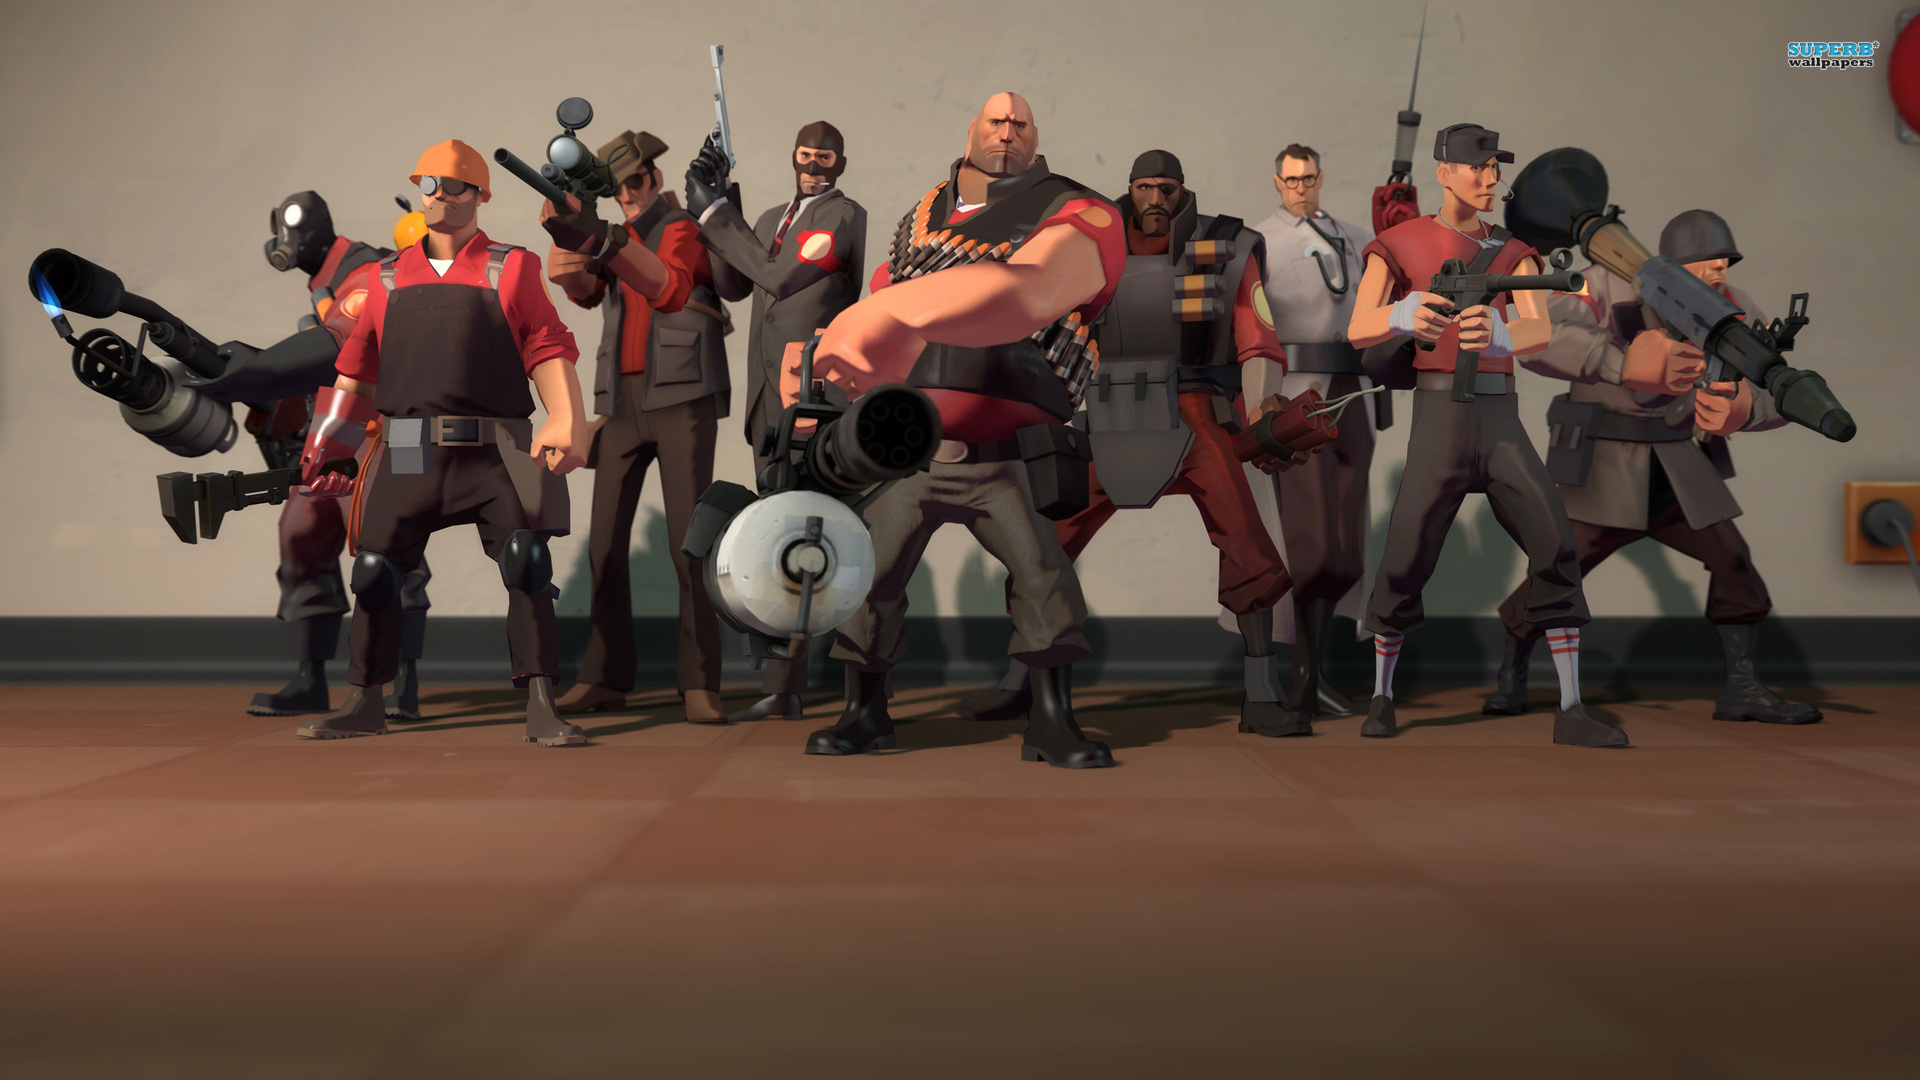 ... team-fortress-2-wallpapers-new ...